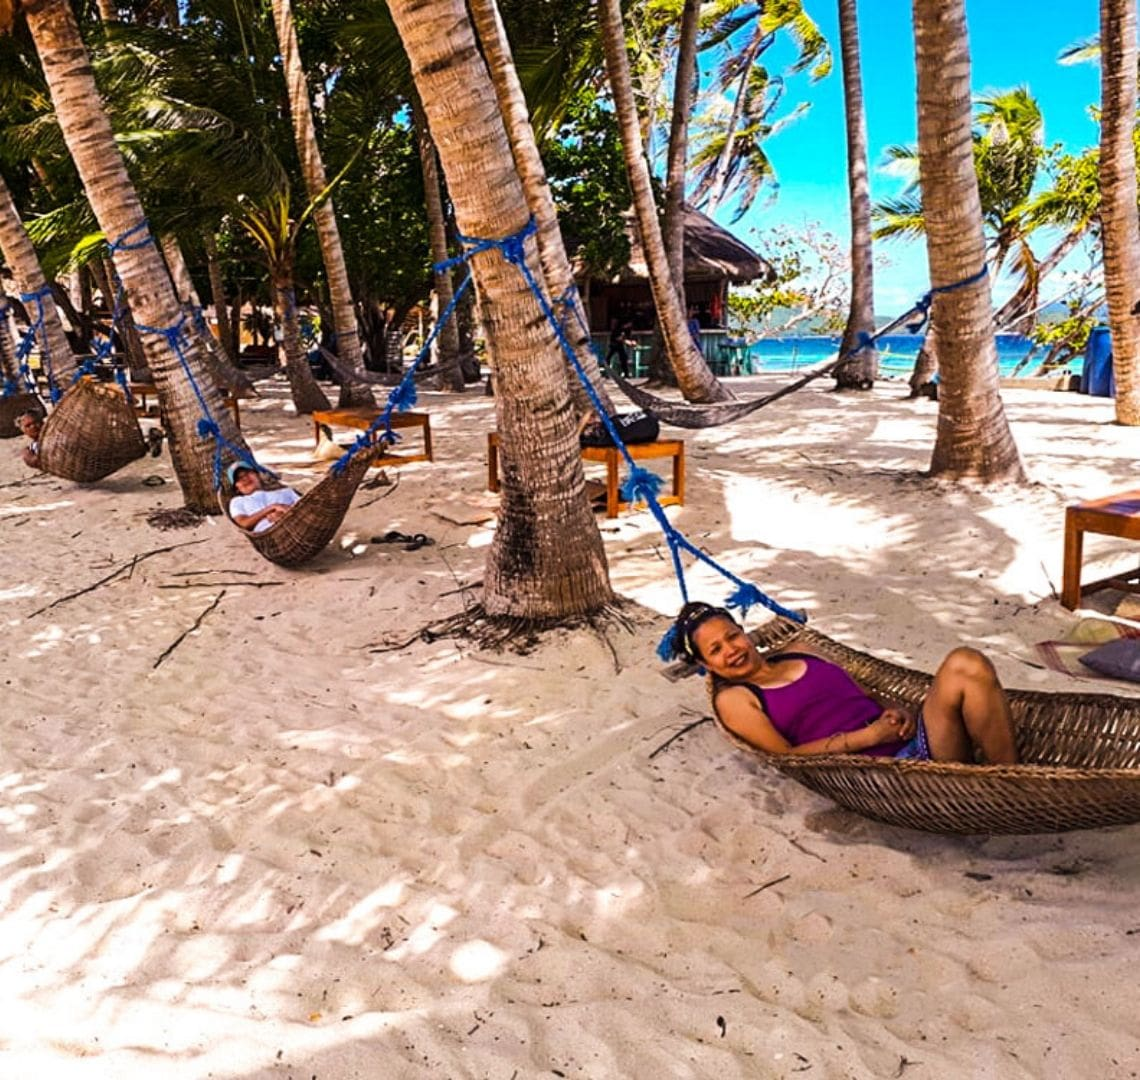 Inaladelan - there are three hammocks strung up between palm trees and two behind them. A lady in the first hammock is smiling at the camera. She is wearing a bright purple top. There is a hut with a thatched toof behind all the trees and the turquoise and blue sea can be glimpsed in teh background.